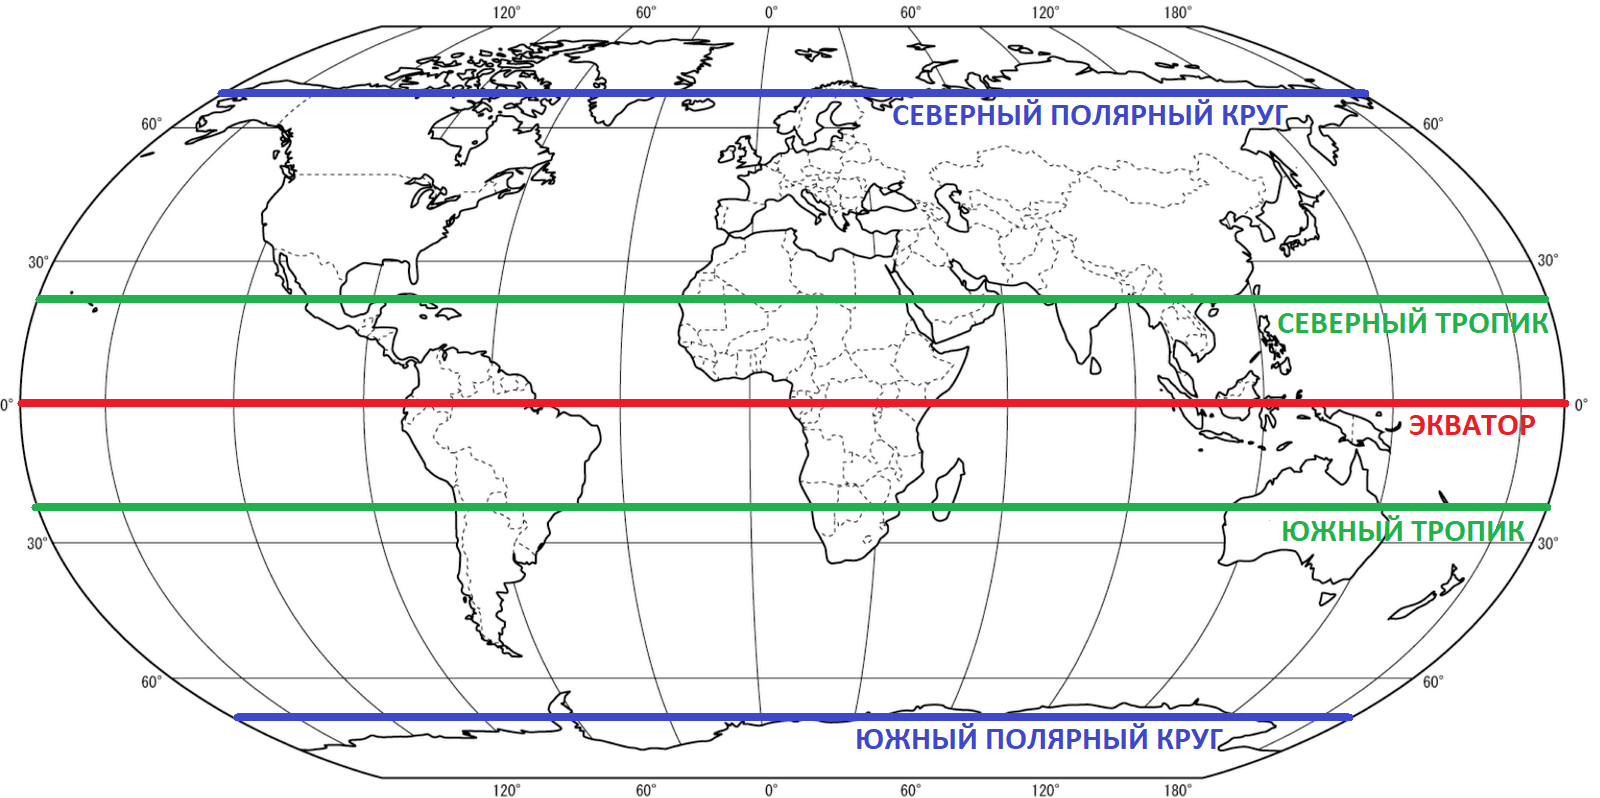 https://geostudy.ru/images/paral.png